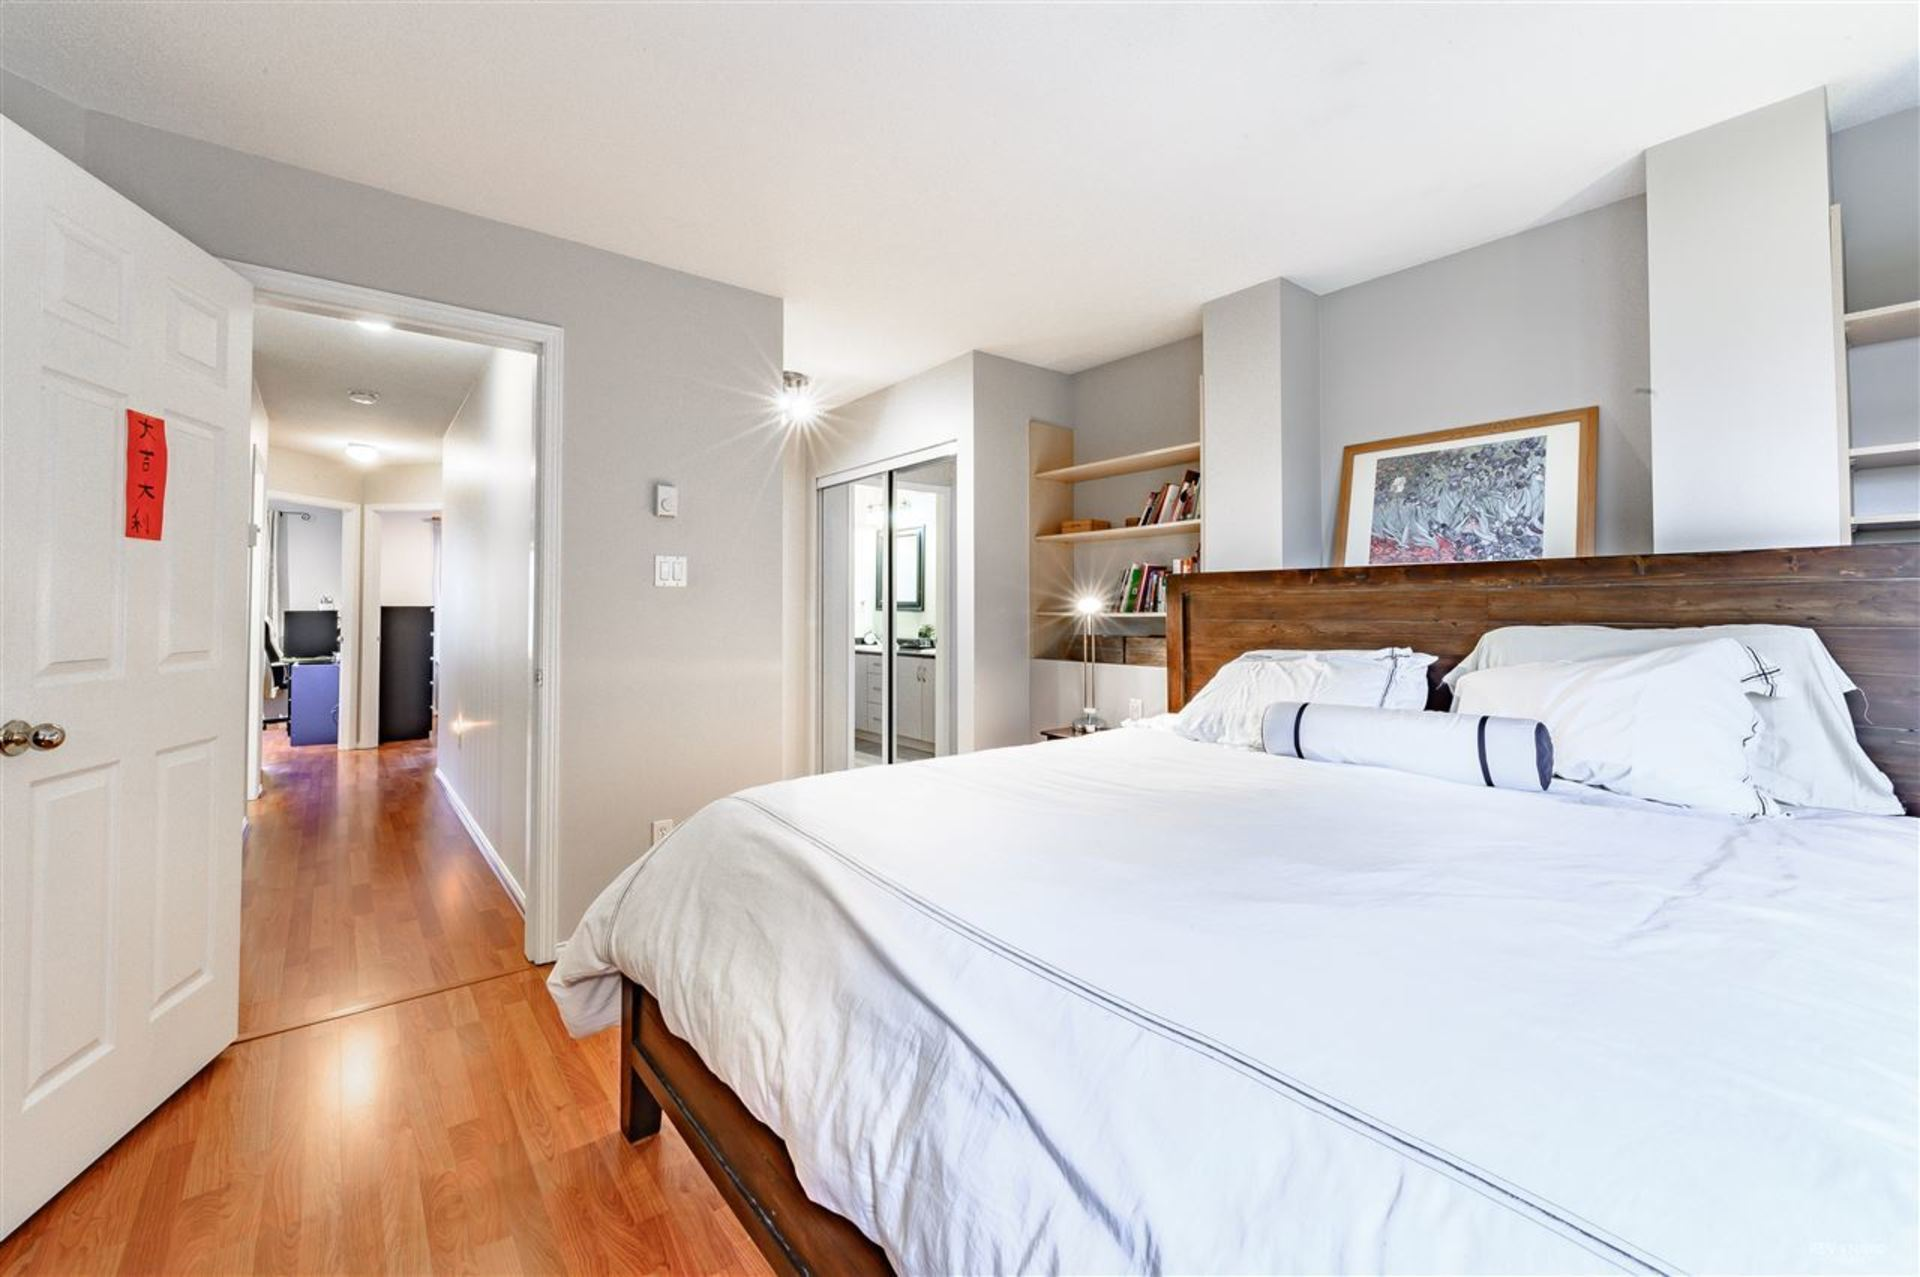 12500-mcneely-drive-east-cambie-richmond-11 at 11 - 12500 Mcneely Drive, East Cambie, Richmond